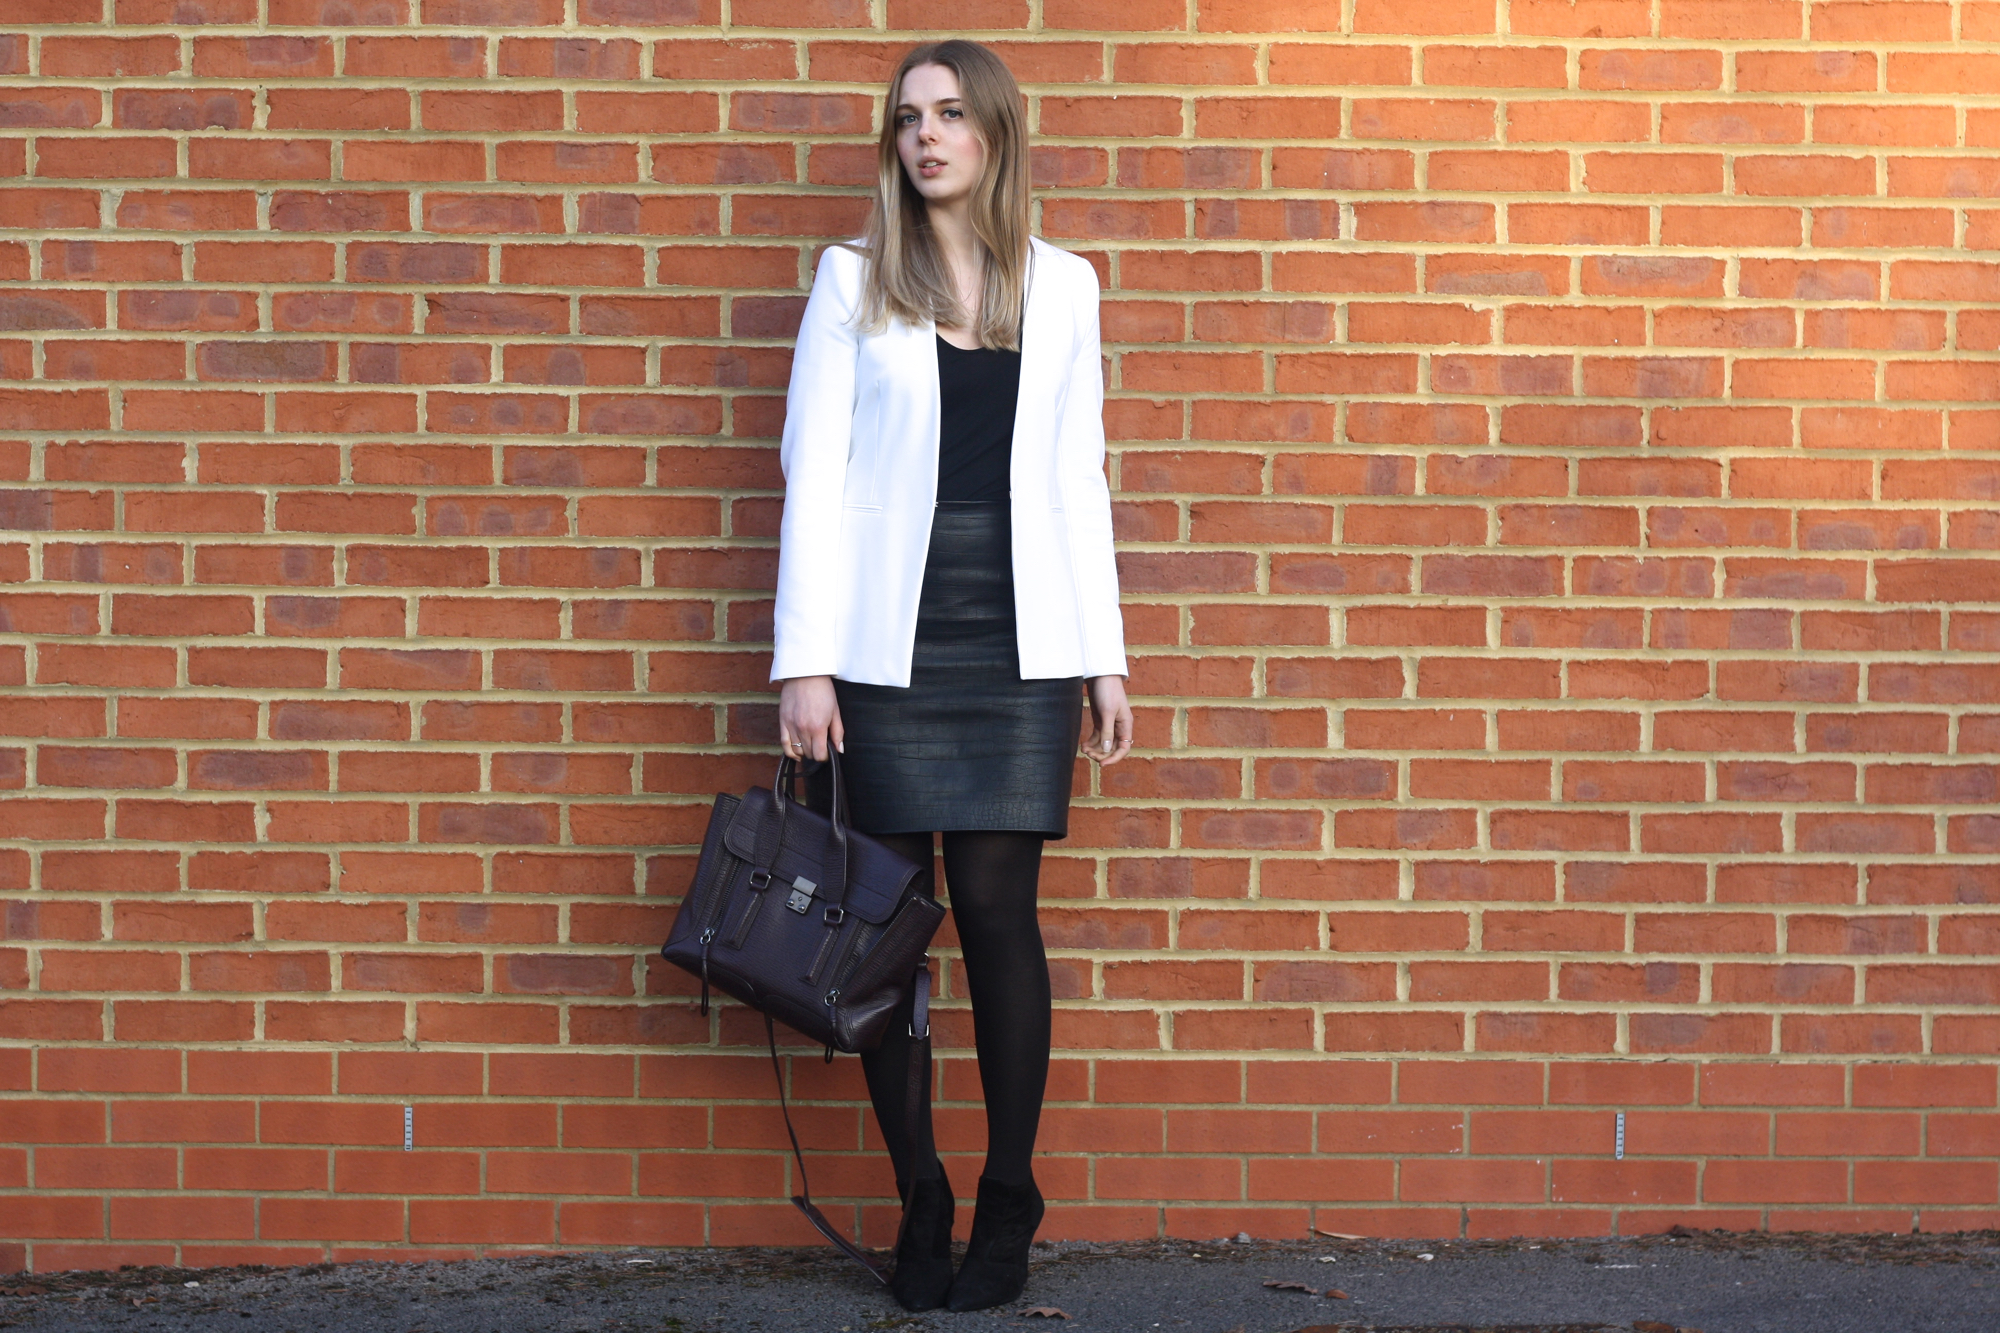 Topshop black t-shirt, Zara white jacket and 3.1 Phillip Lim Pashli bag